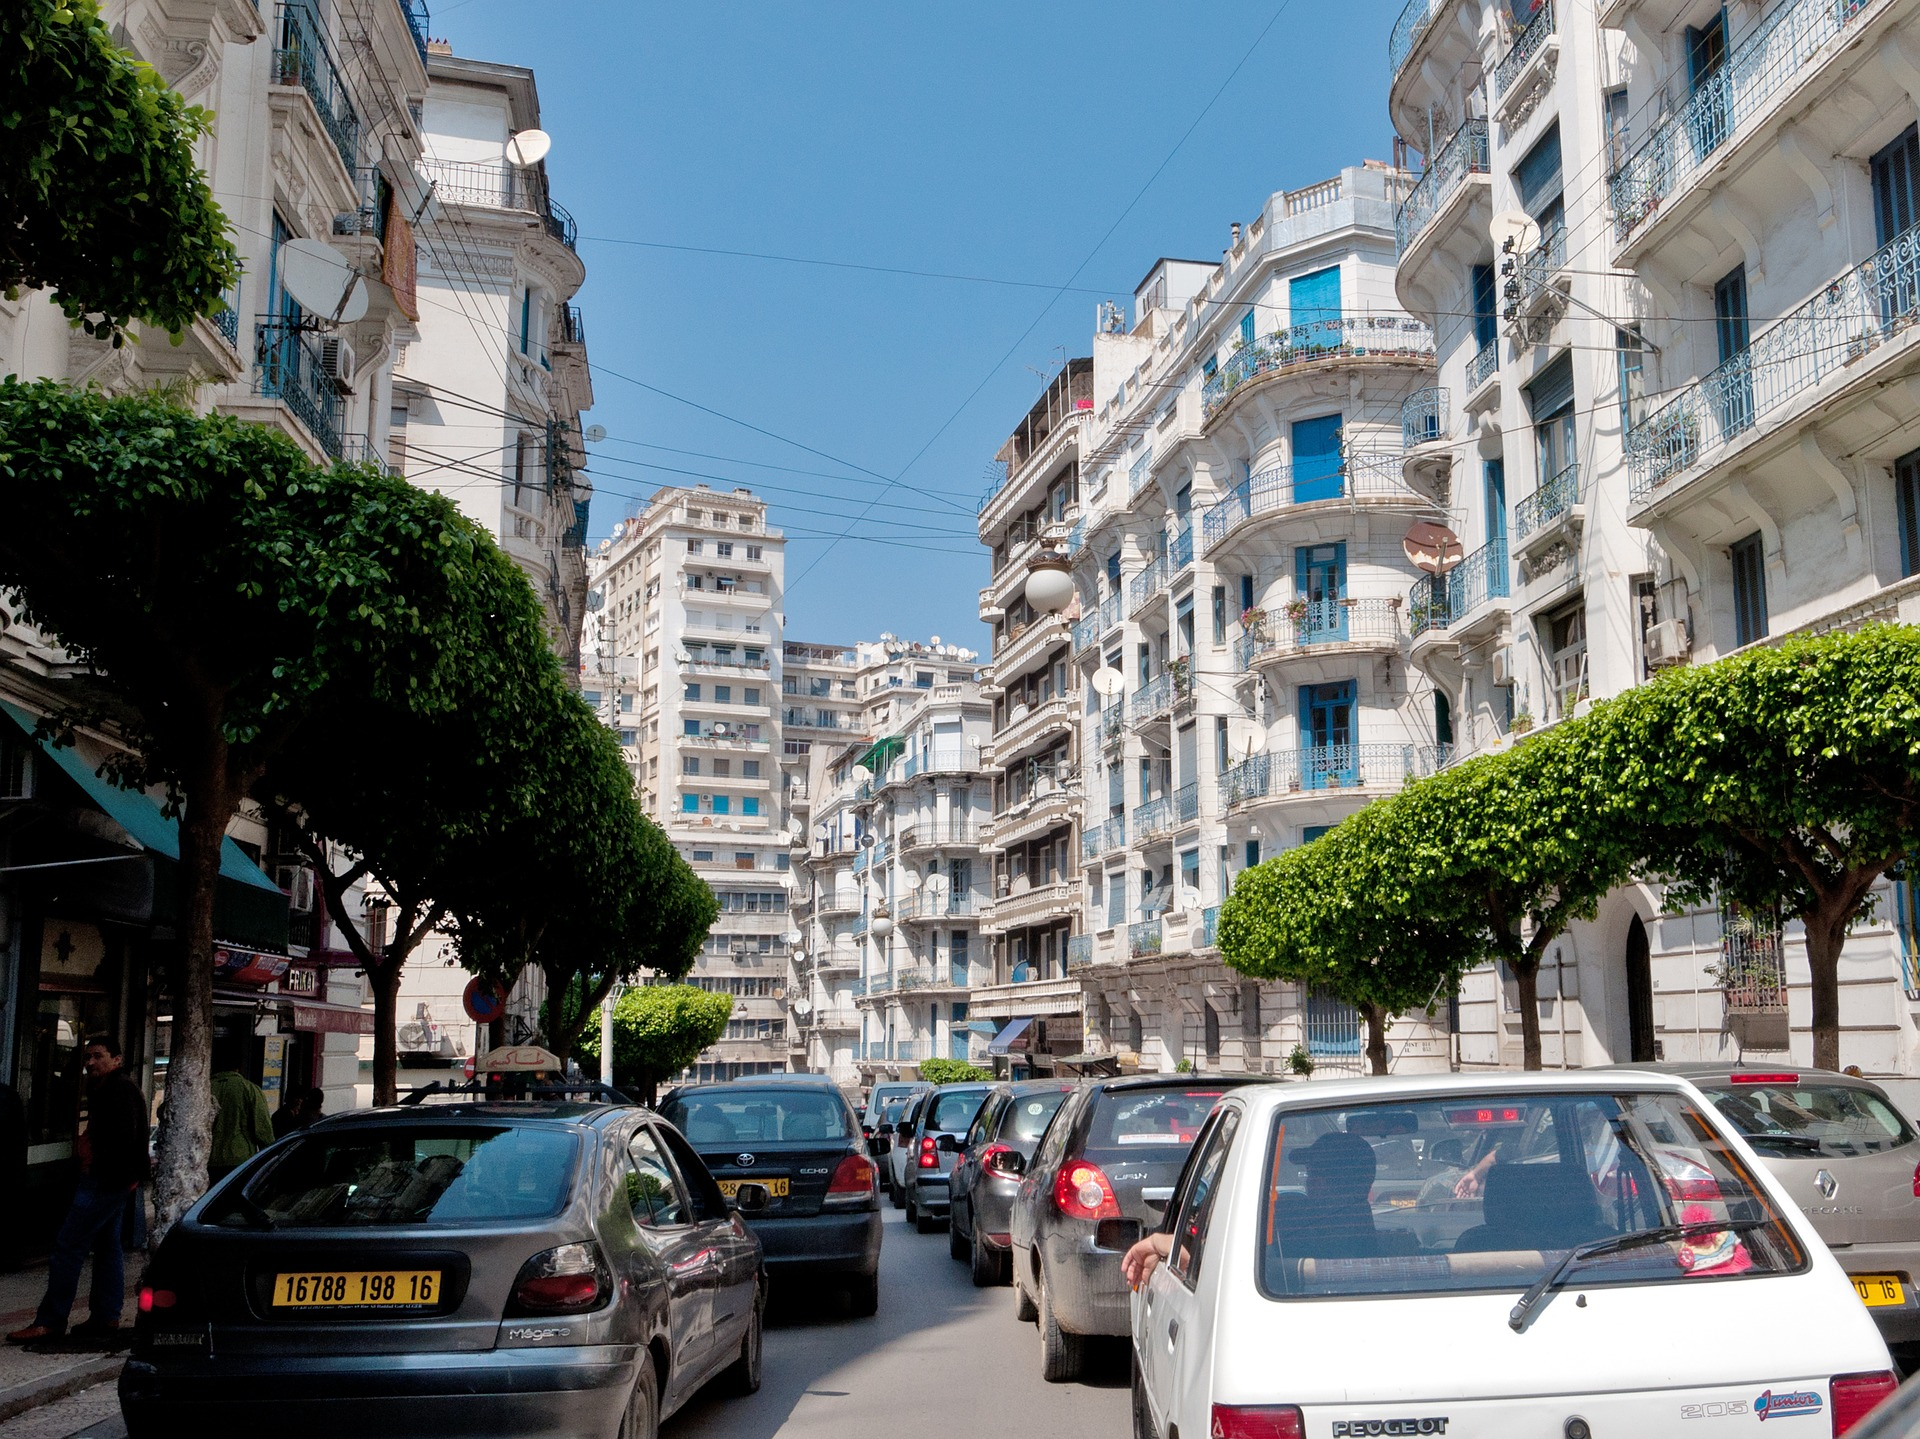 Street view with high blocks overlooking pedestrians and vehicles